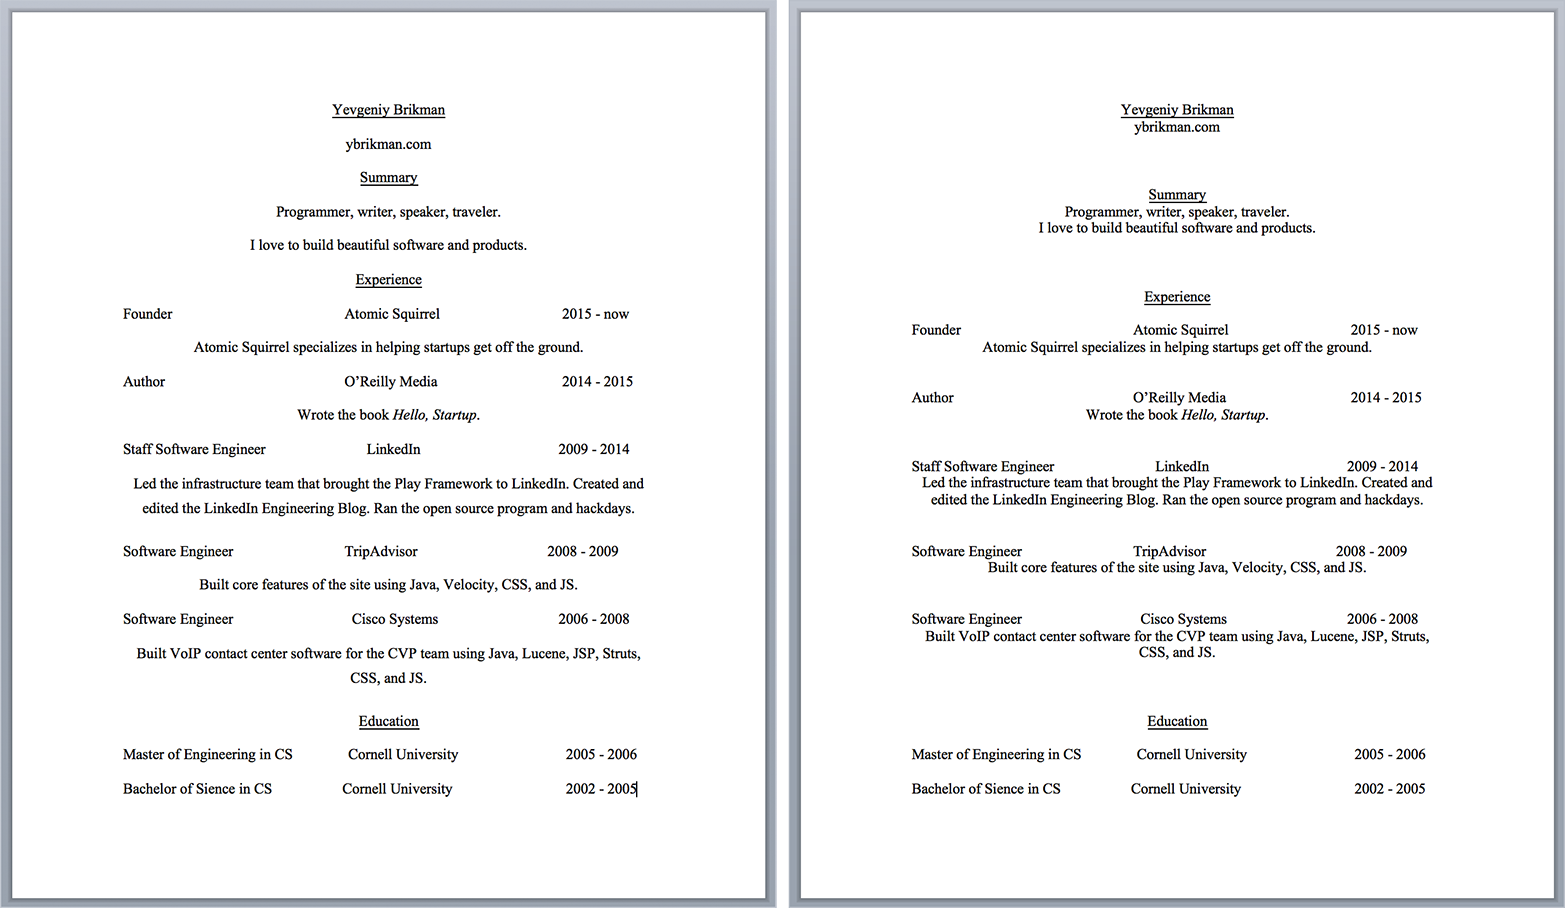 The original resume on the left, and the same resume, but with better use of proximity, on the right